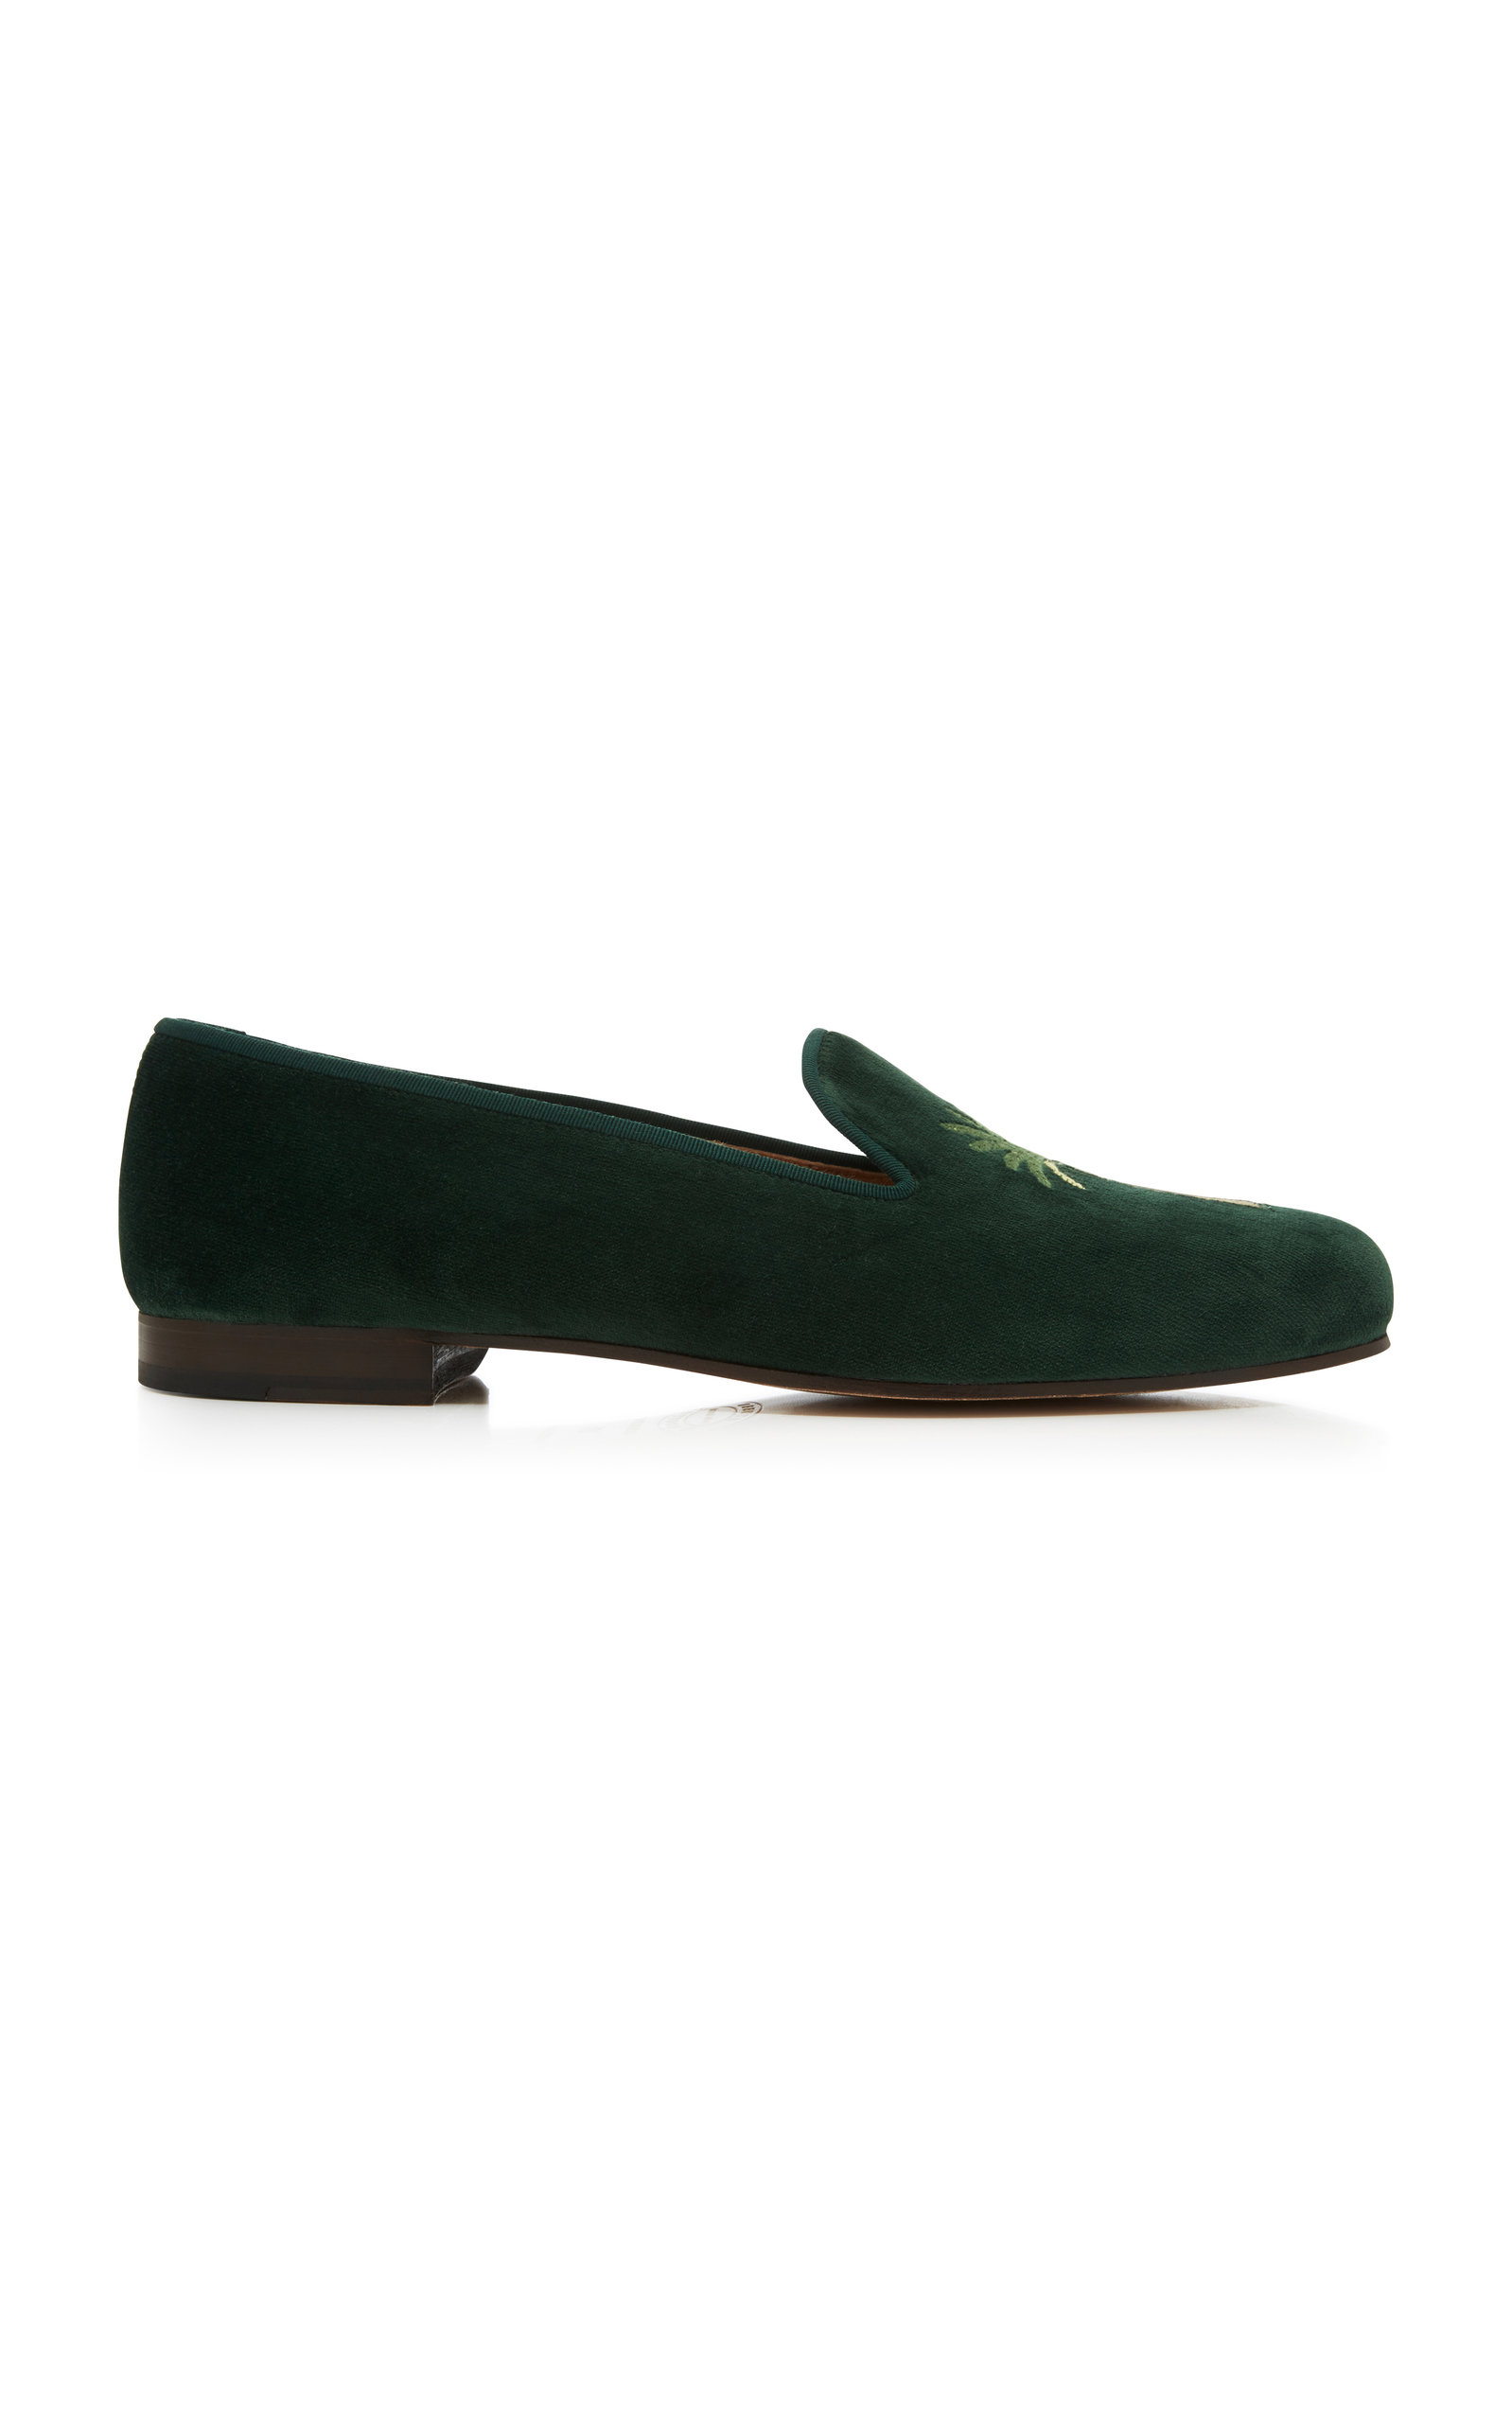 STUBBS & WOOTTON Exclusive Palm Tree Velvet Slippers in Green